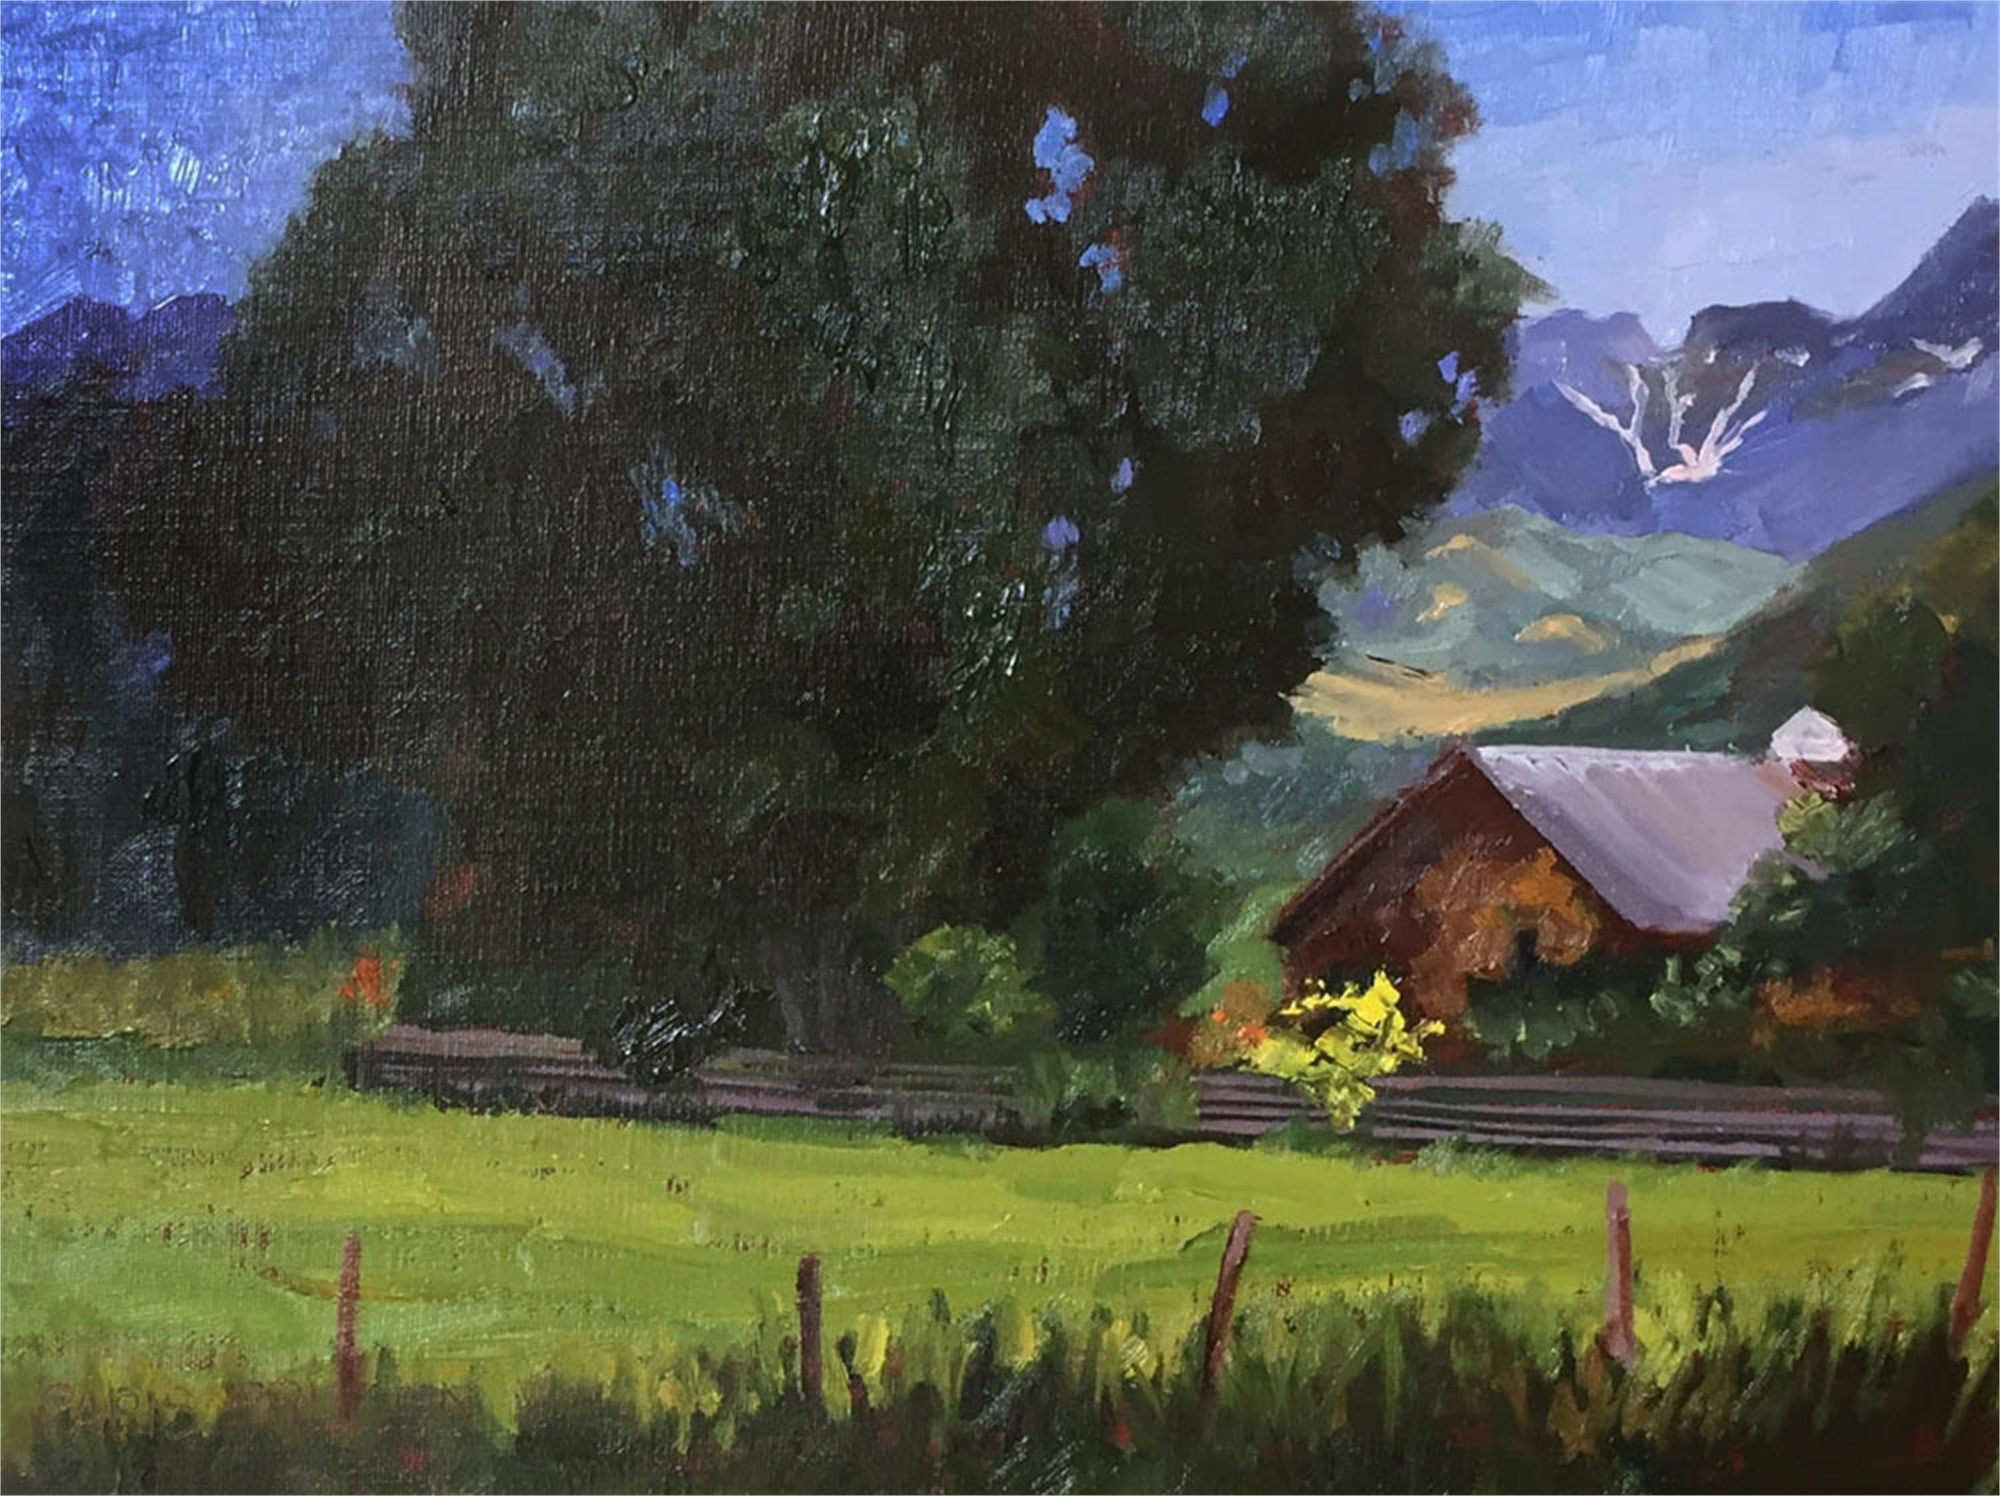 Summer Mountain Home by Nancy Paris Pruden